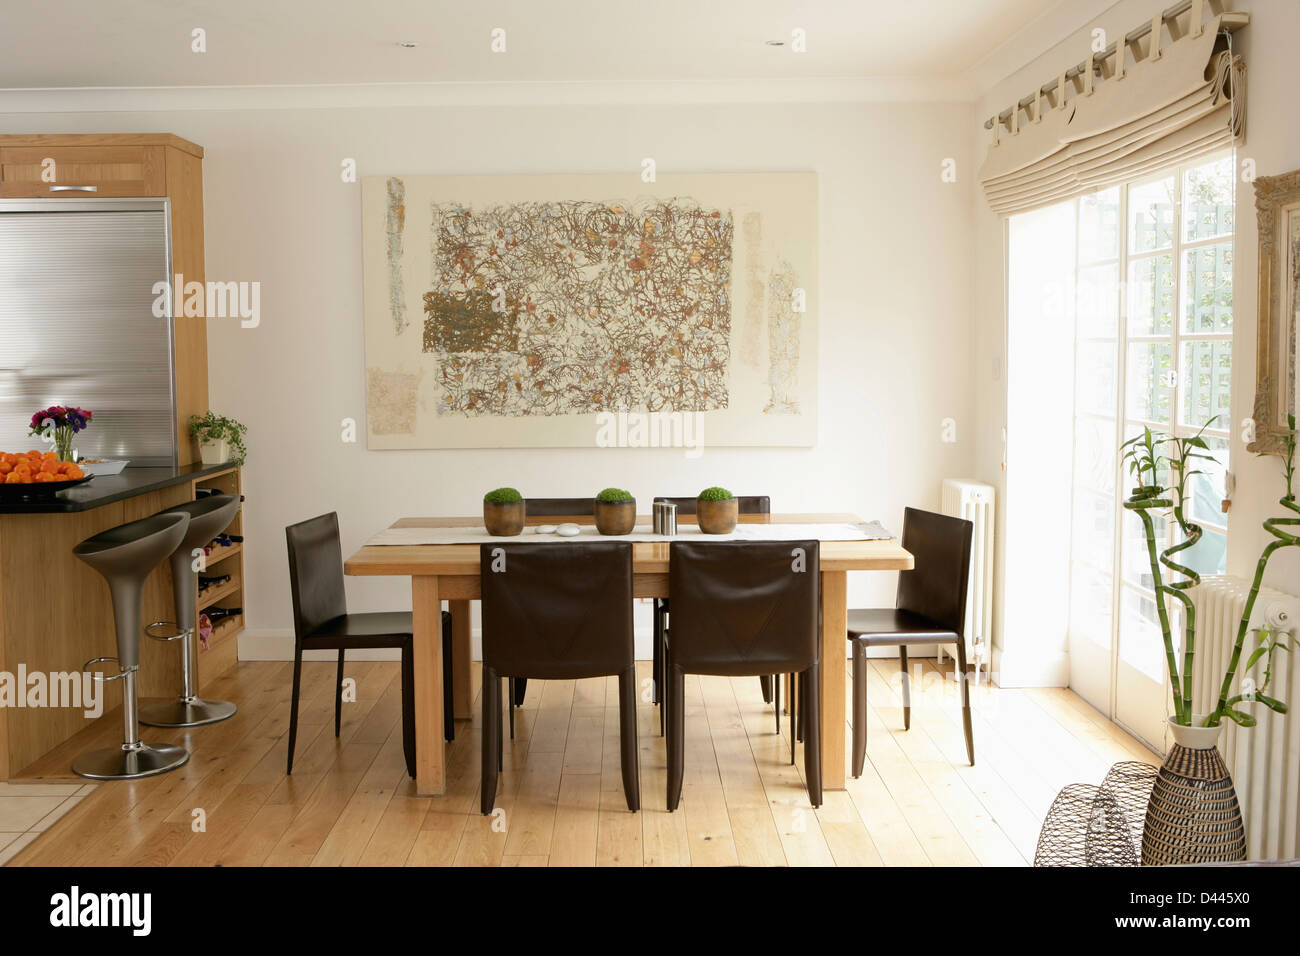 Black Chairs And Pale Wood Table In Dining Area Of Modern White Kitchen  With Wooden Flooring